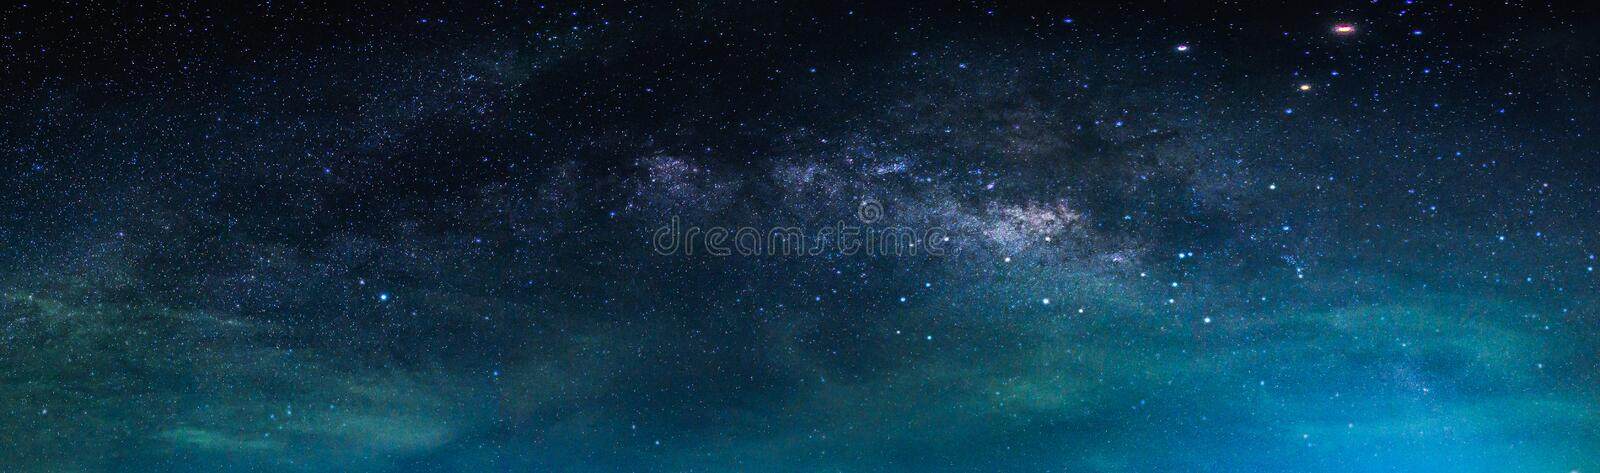 Landscape with Milky way galaxy. Night sky with stars stock photography